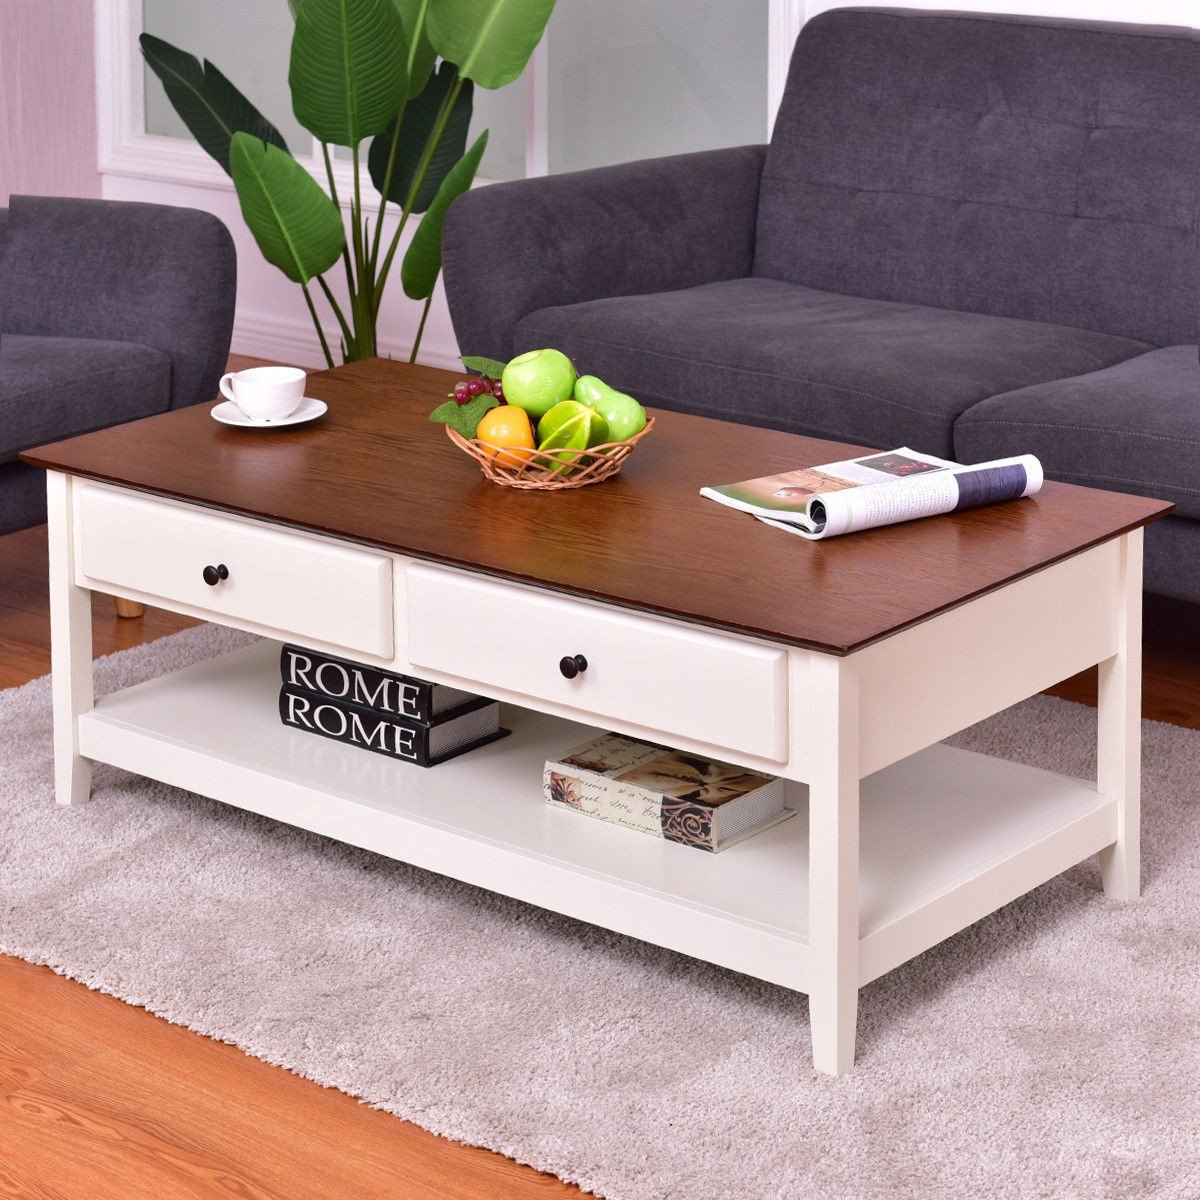 Loray Wood Accent Coffee Table Coffee Table Shelves Modern Living Room Coffee Table Rectangle [ 1200 x 1200 Pixel ]